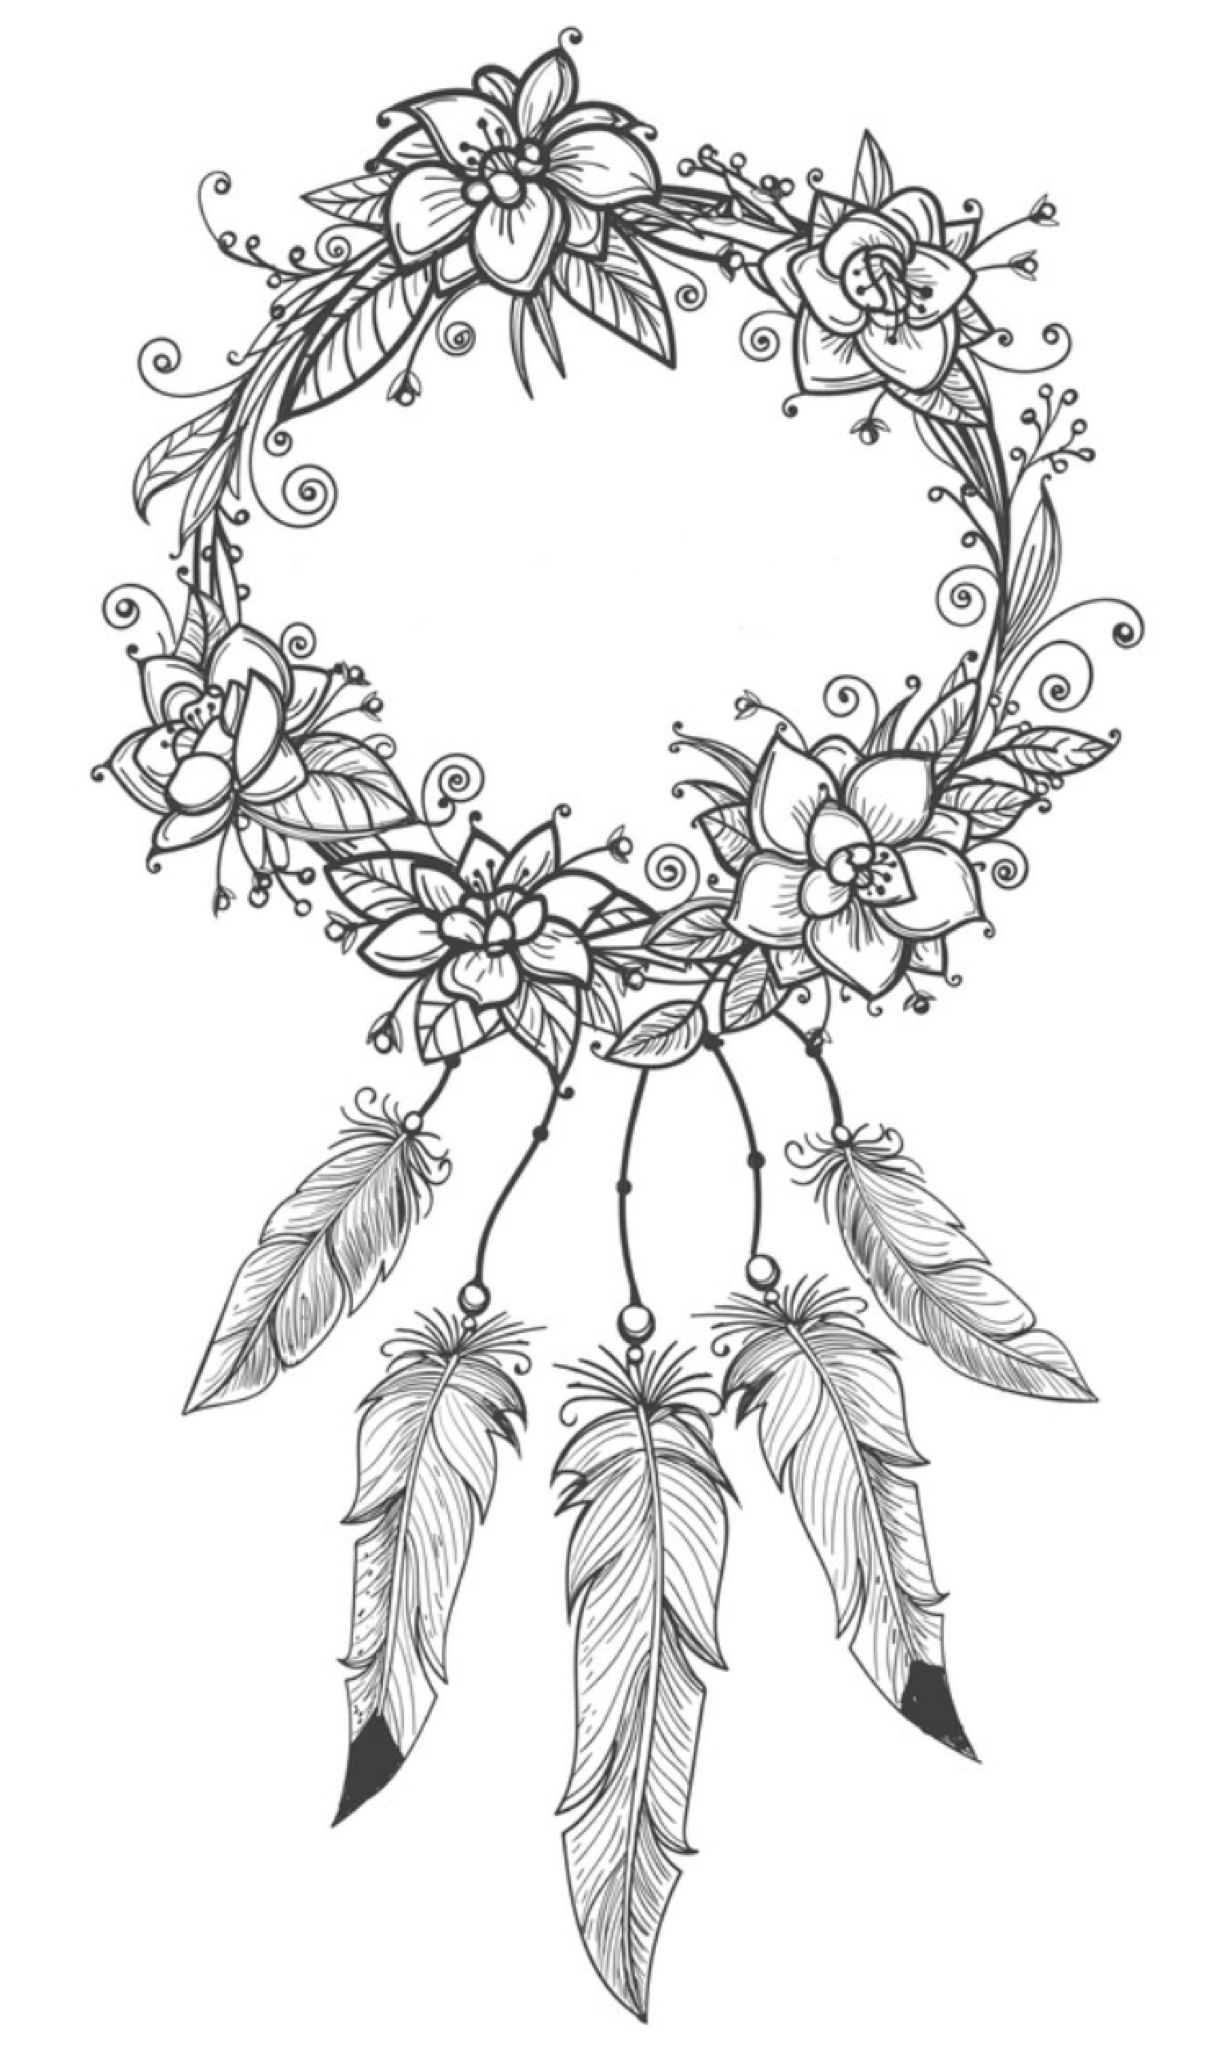 Dreamcatcher Coloring Page | Coloring Pages For Adults